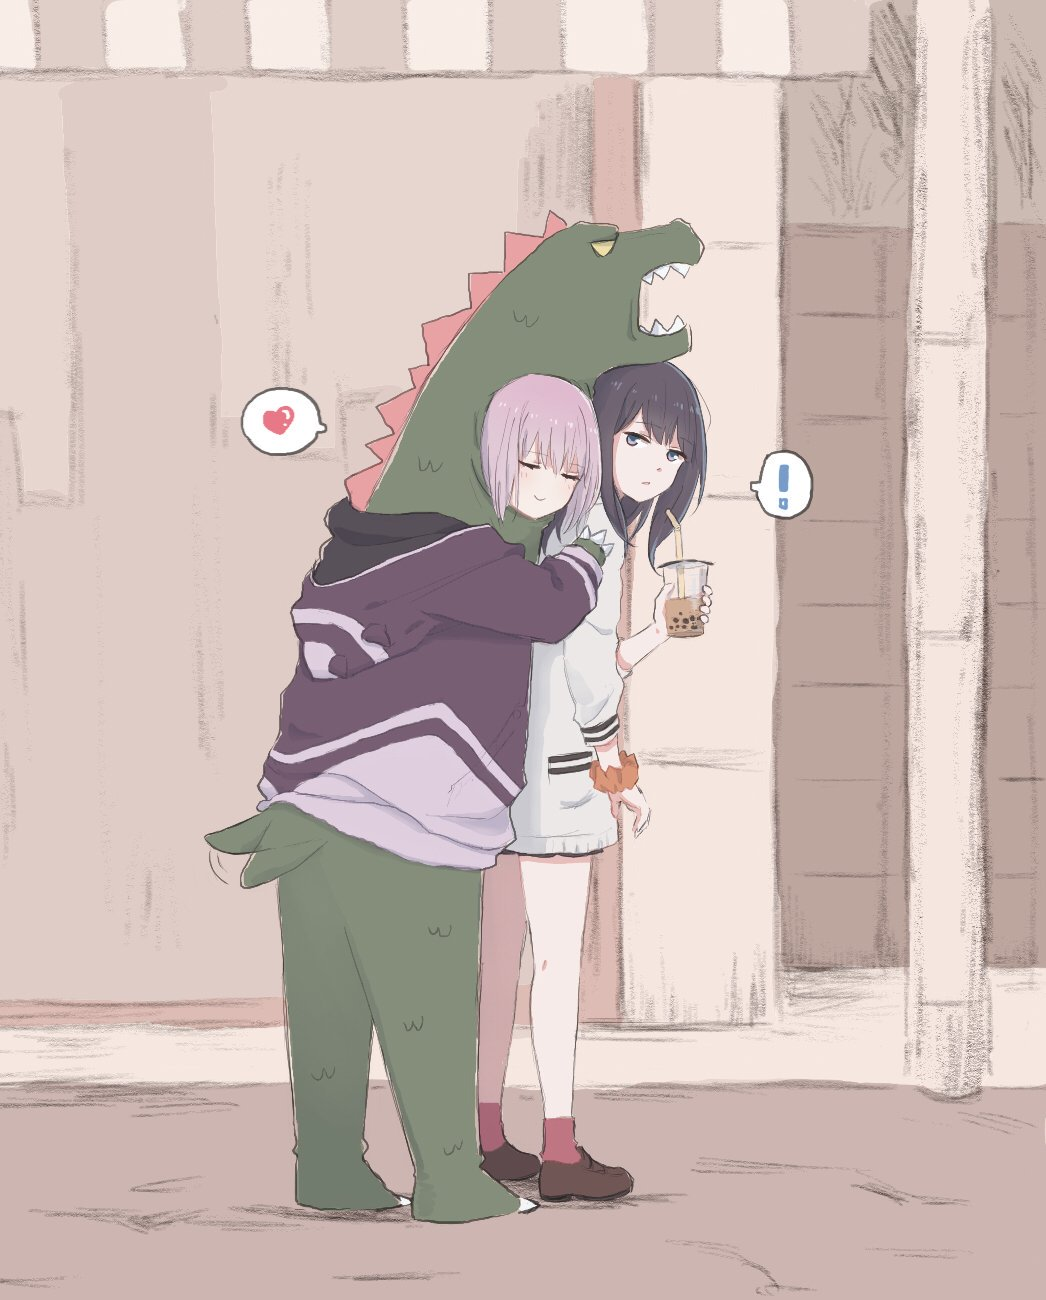 ! 2girls animal_costume black_hair bubble_tea closed_eyes commentary cup heart highres holding holding_cup hug hug_from_behind jacket long_hair lyy multiple_girls orange_scrunchie pink_hair purple_jacket scrunchie shinjou_akane spoken_exclamation_mark spoken_heart ssss.gridman standing tail_wagging takarada_rikka white_cardigan wrist_scrunchie